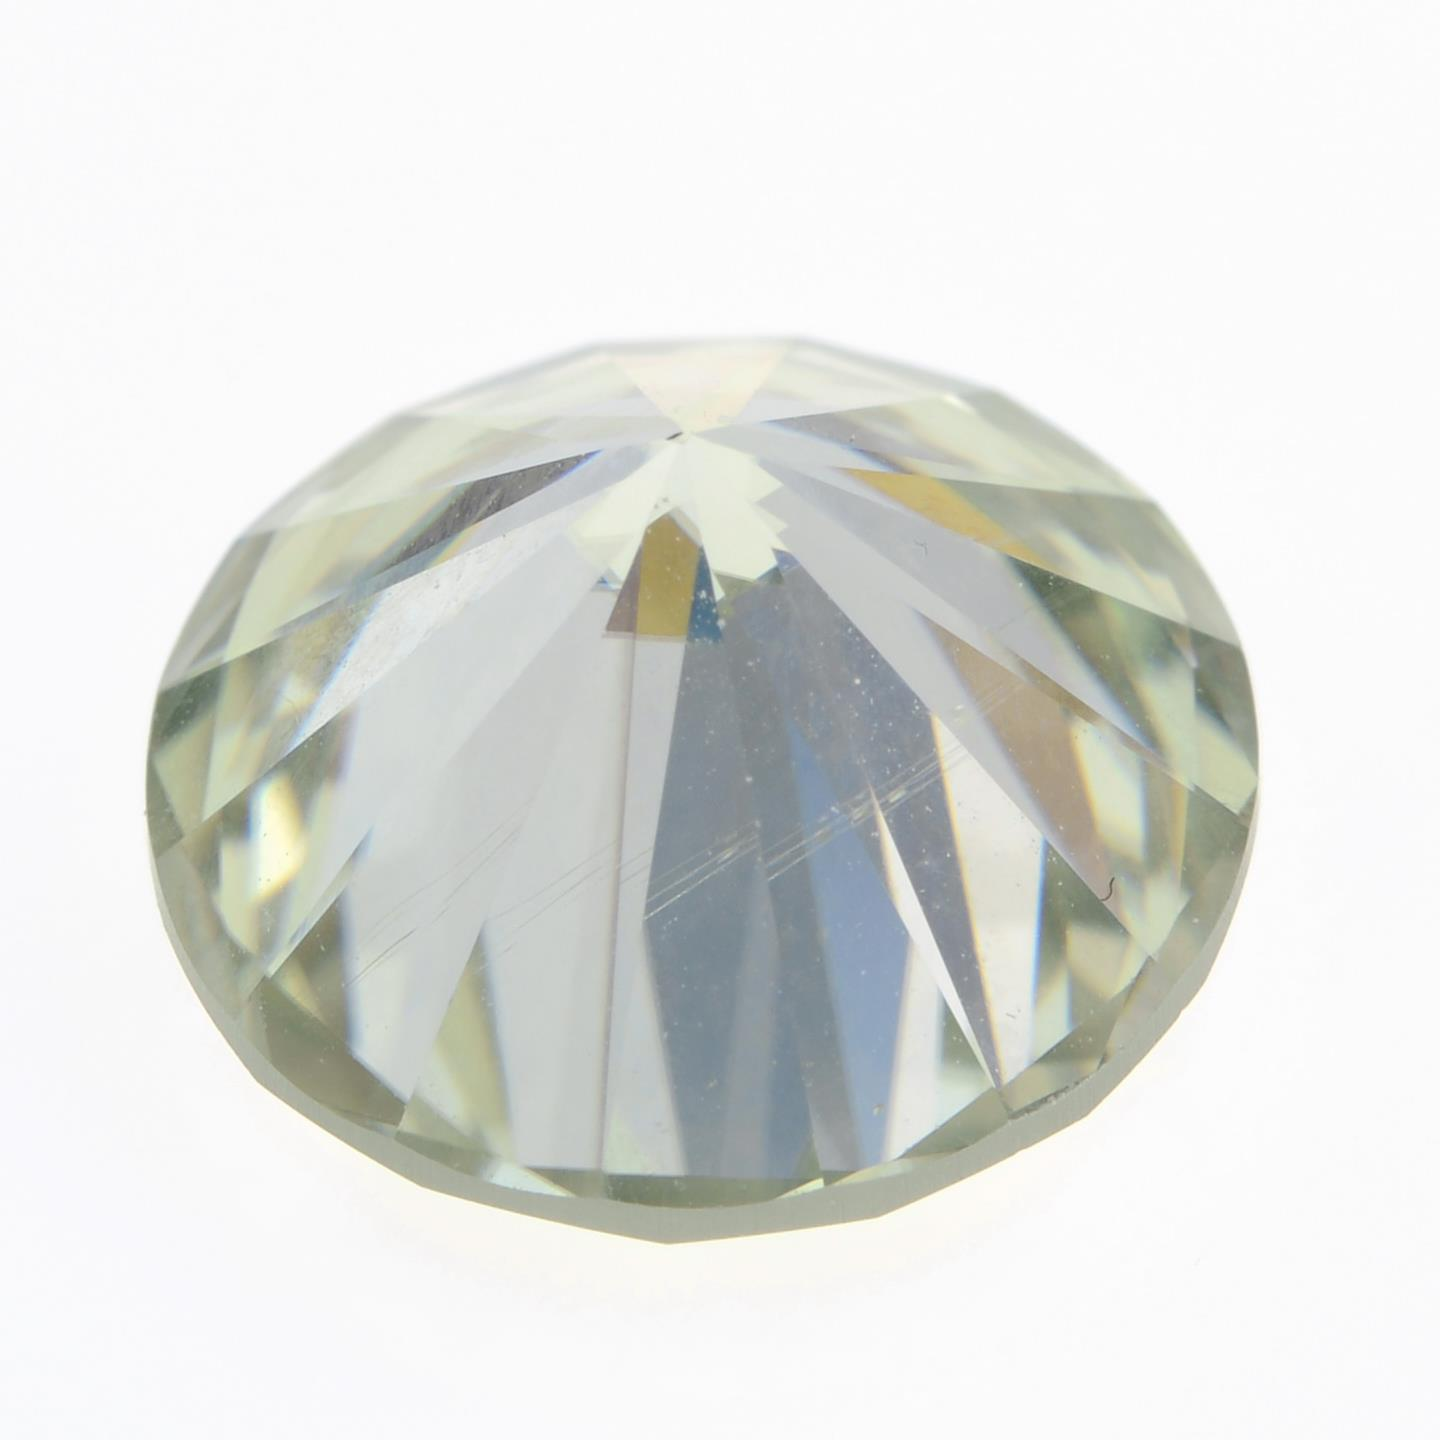 A circular-shape synthetic moissanite, weighing 5.08cts. - Image 2 of 2